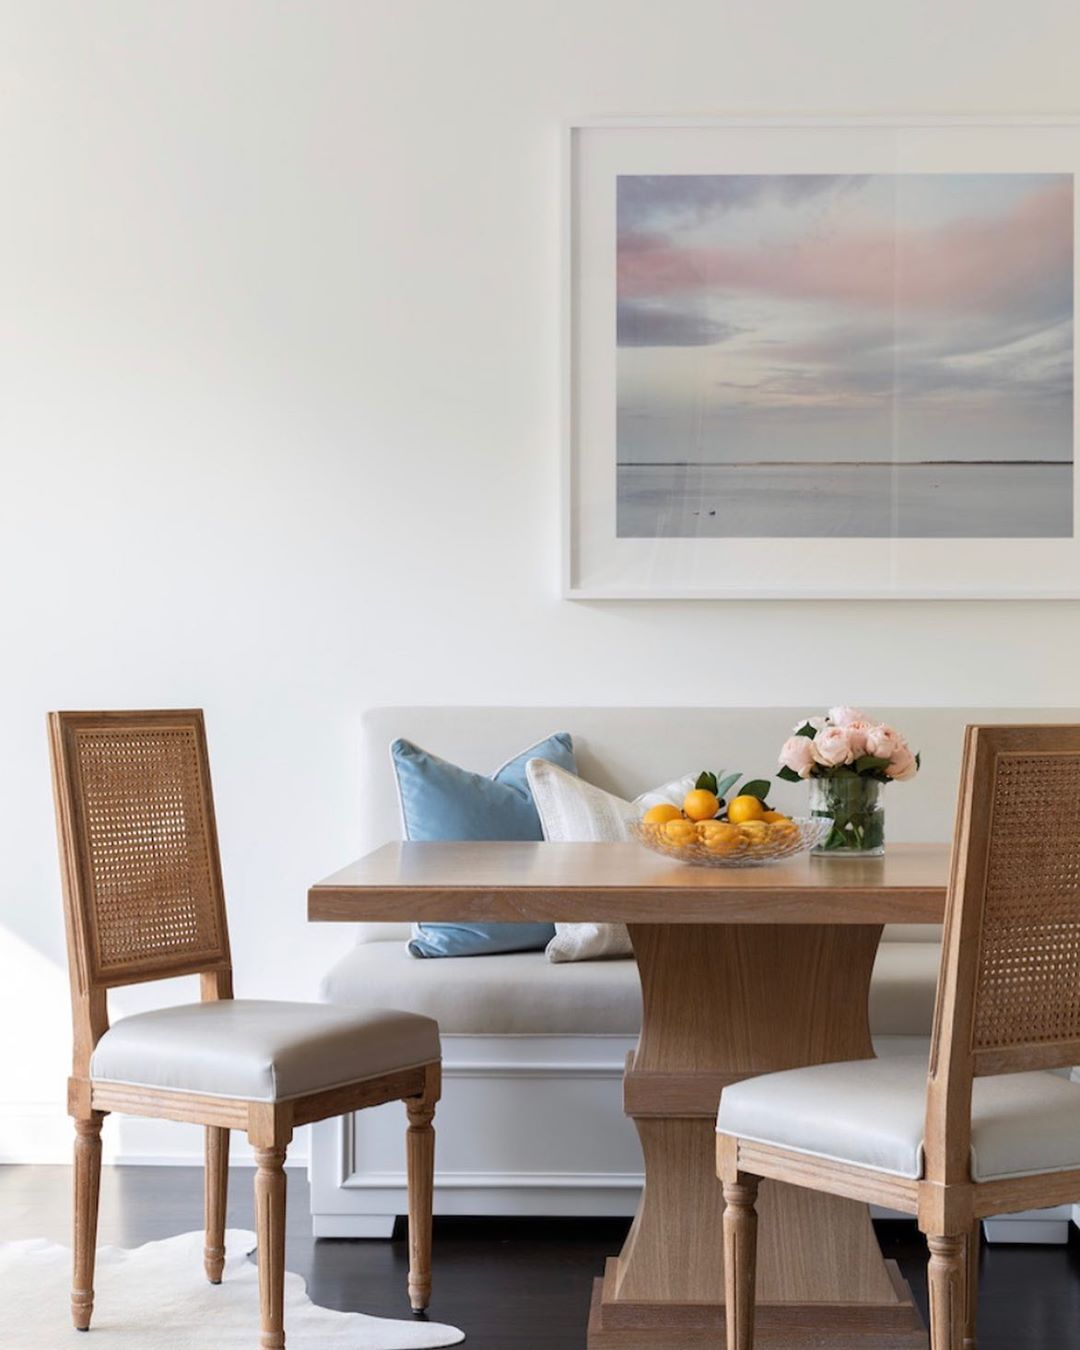 Kitchen nook with beautiful painting, bench, chairs, and table with fresh flowers and citrus